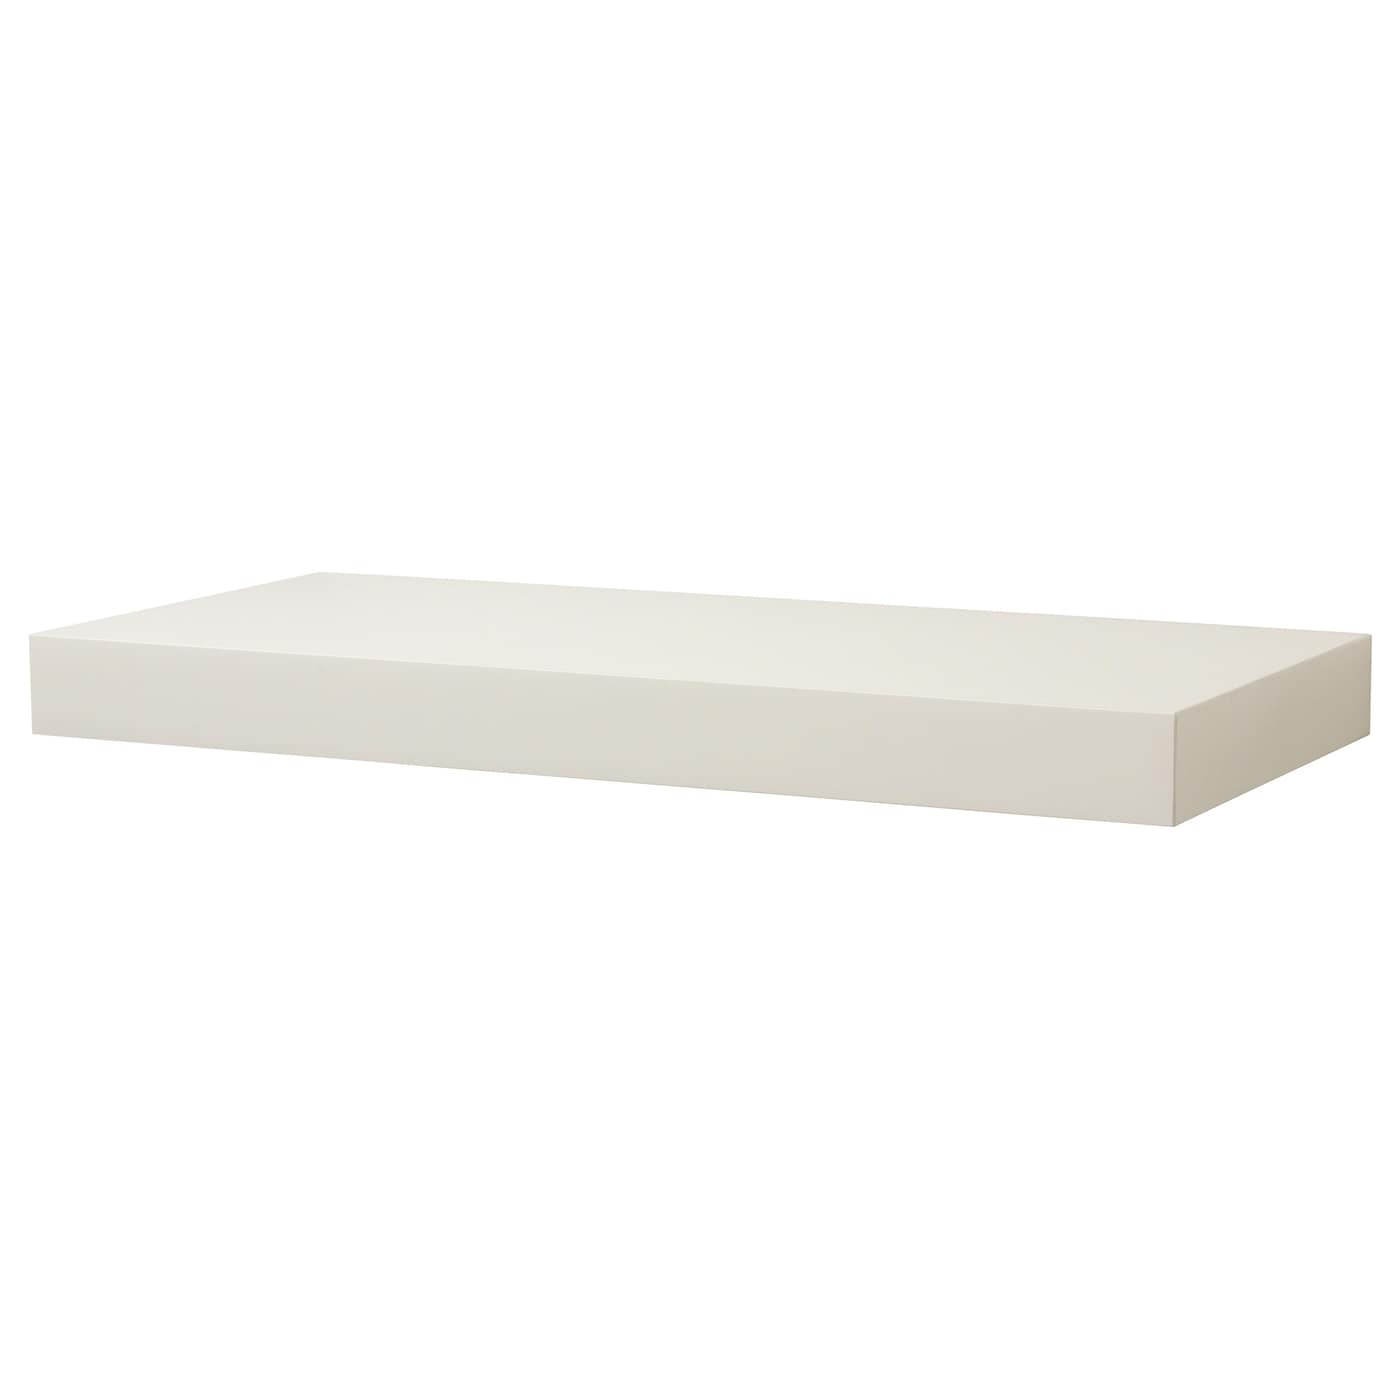 Persby wall shelf white 59x26 cm ikea for Etagere murale avec tiroir